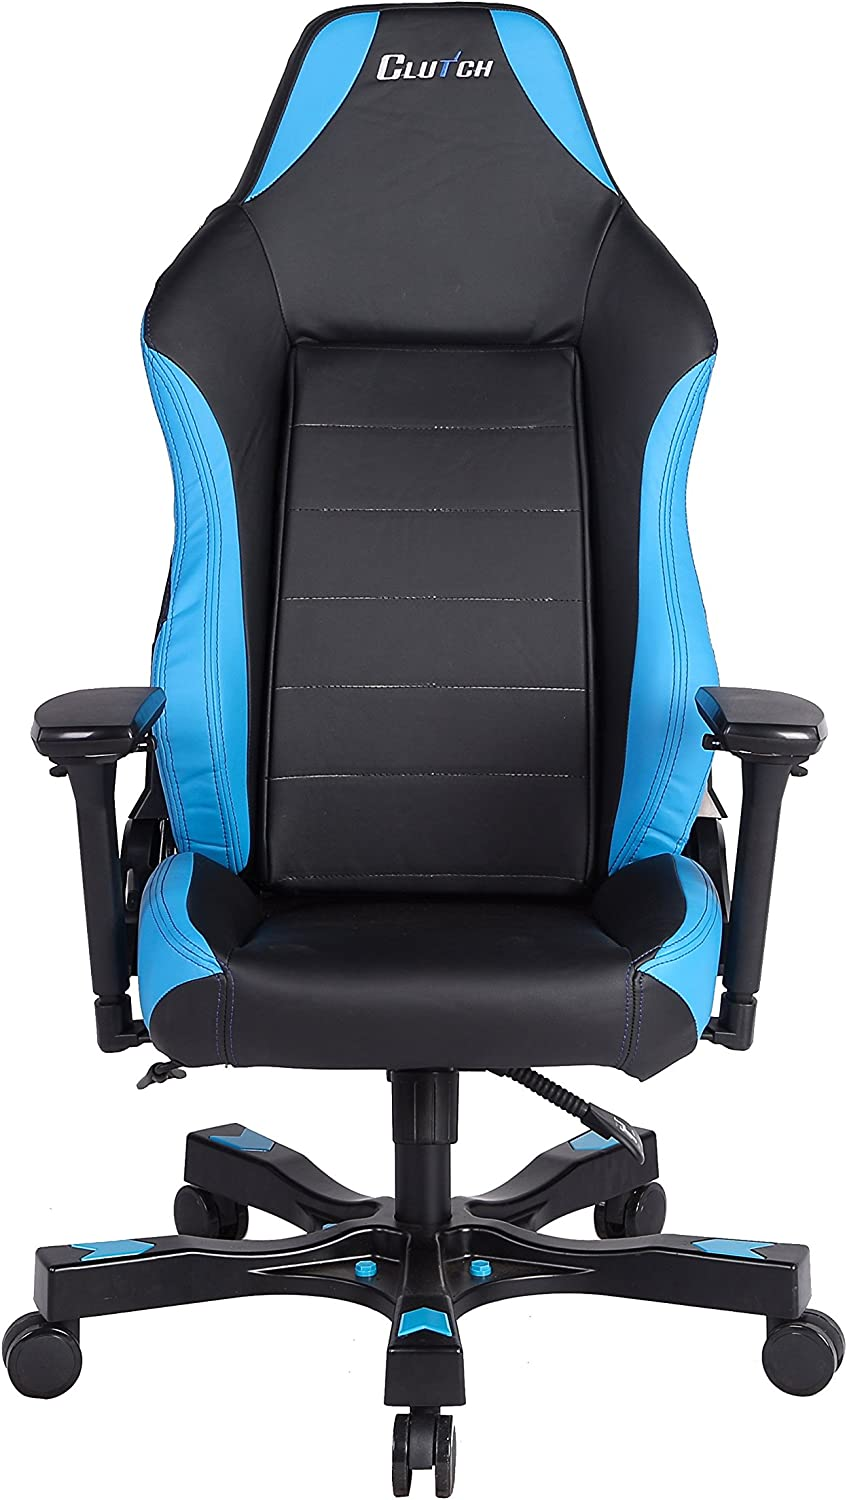 CLUTCH CHAIRZ Shift Series Alpha Mid-Sized Gaming Chair Black Blue